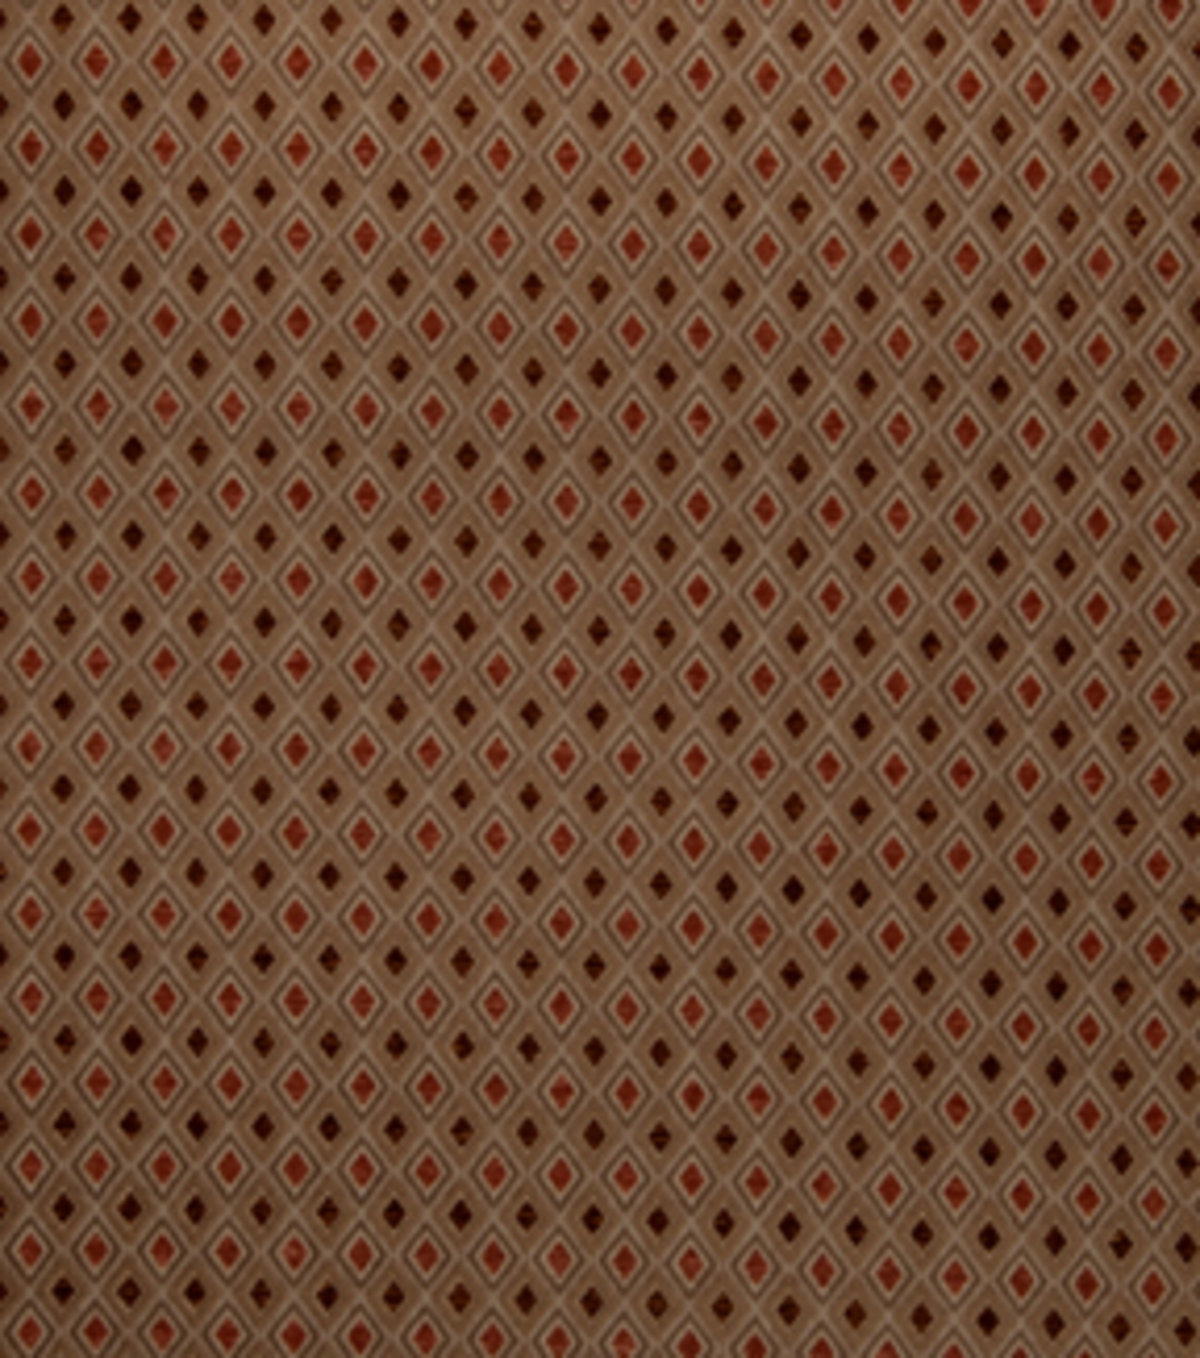 Home Decor 8\u0022x8\u0022 Fabric Swatch-Upholstery Fabric Eaton Square Archive Rustic